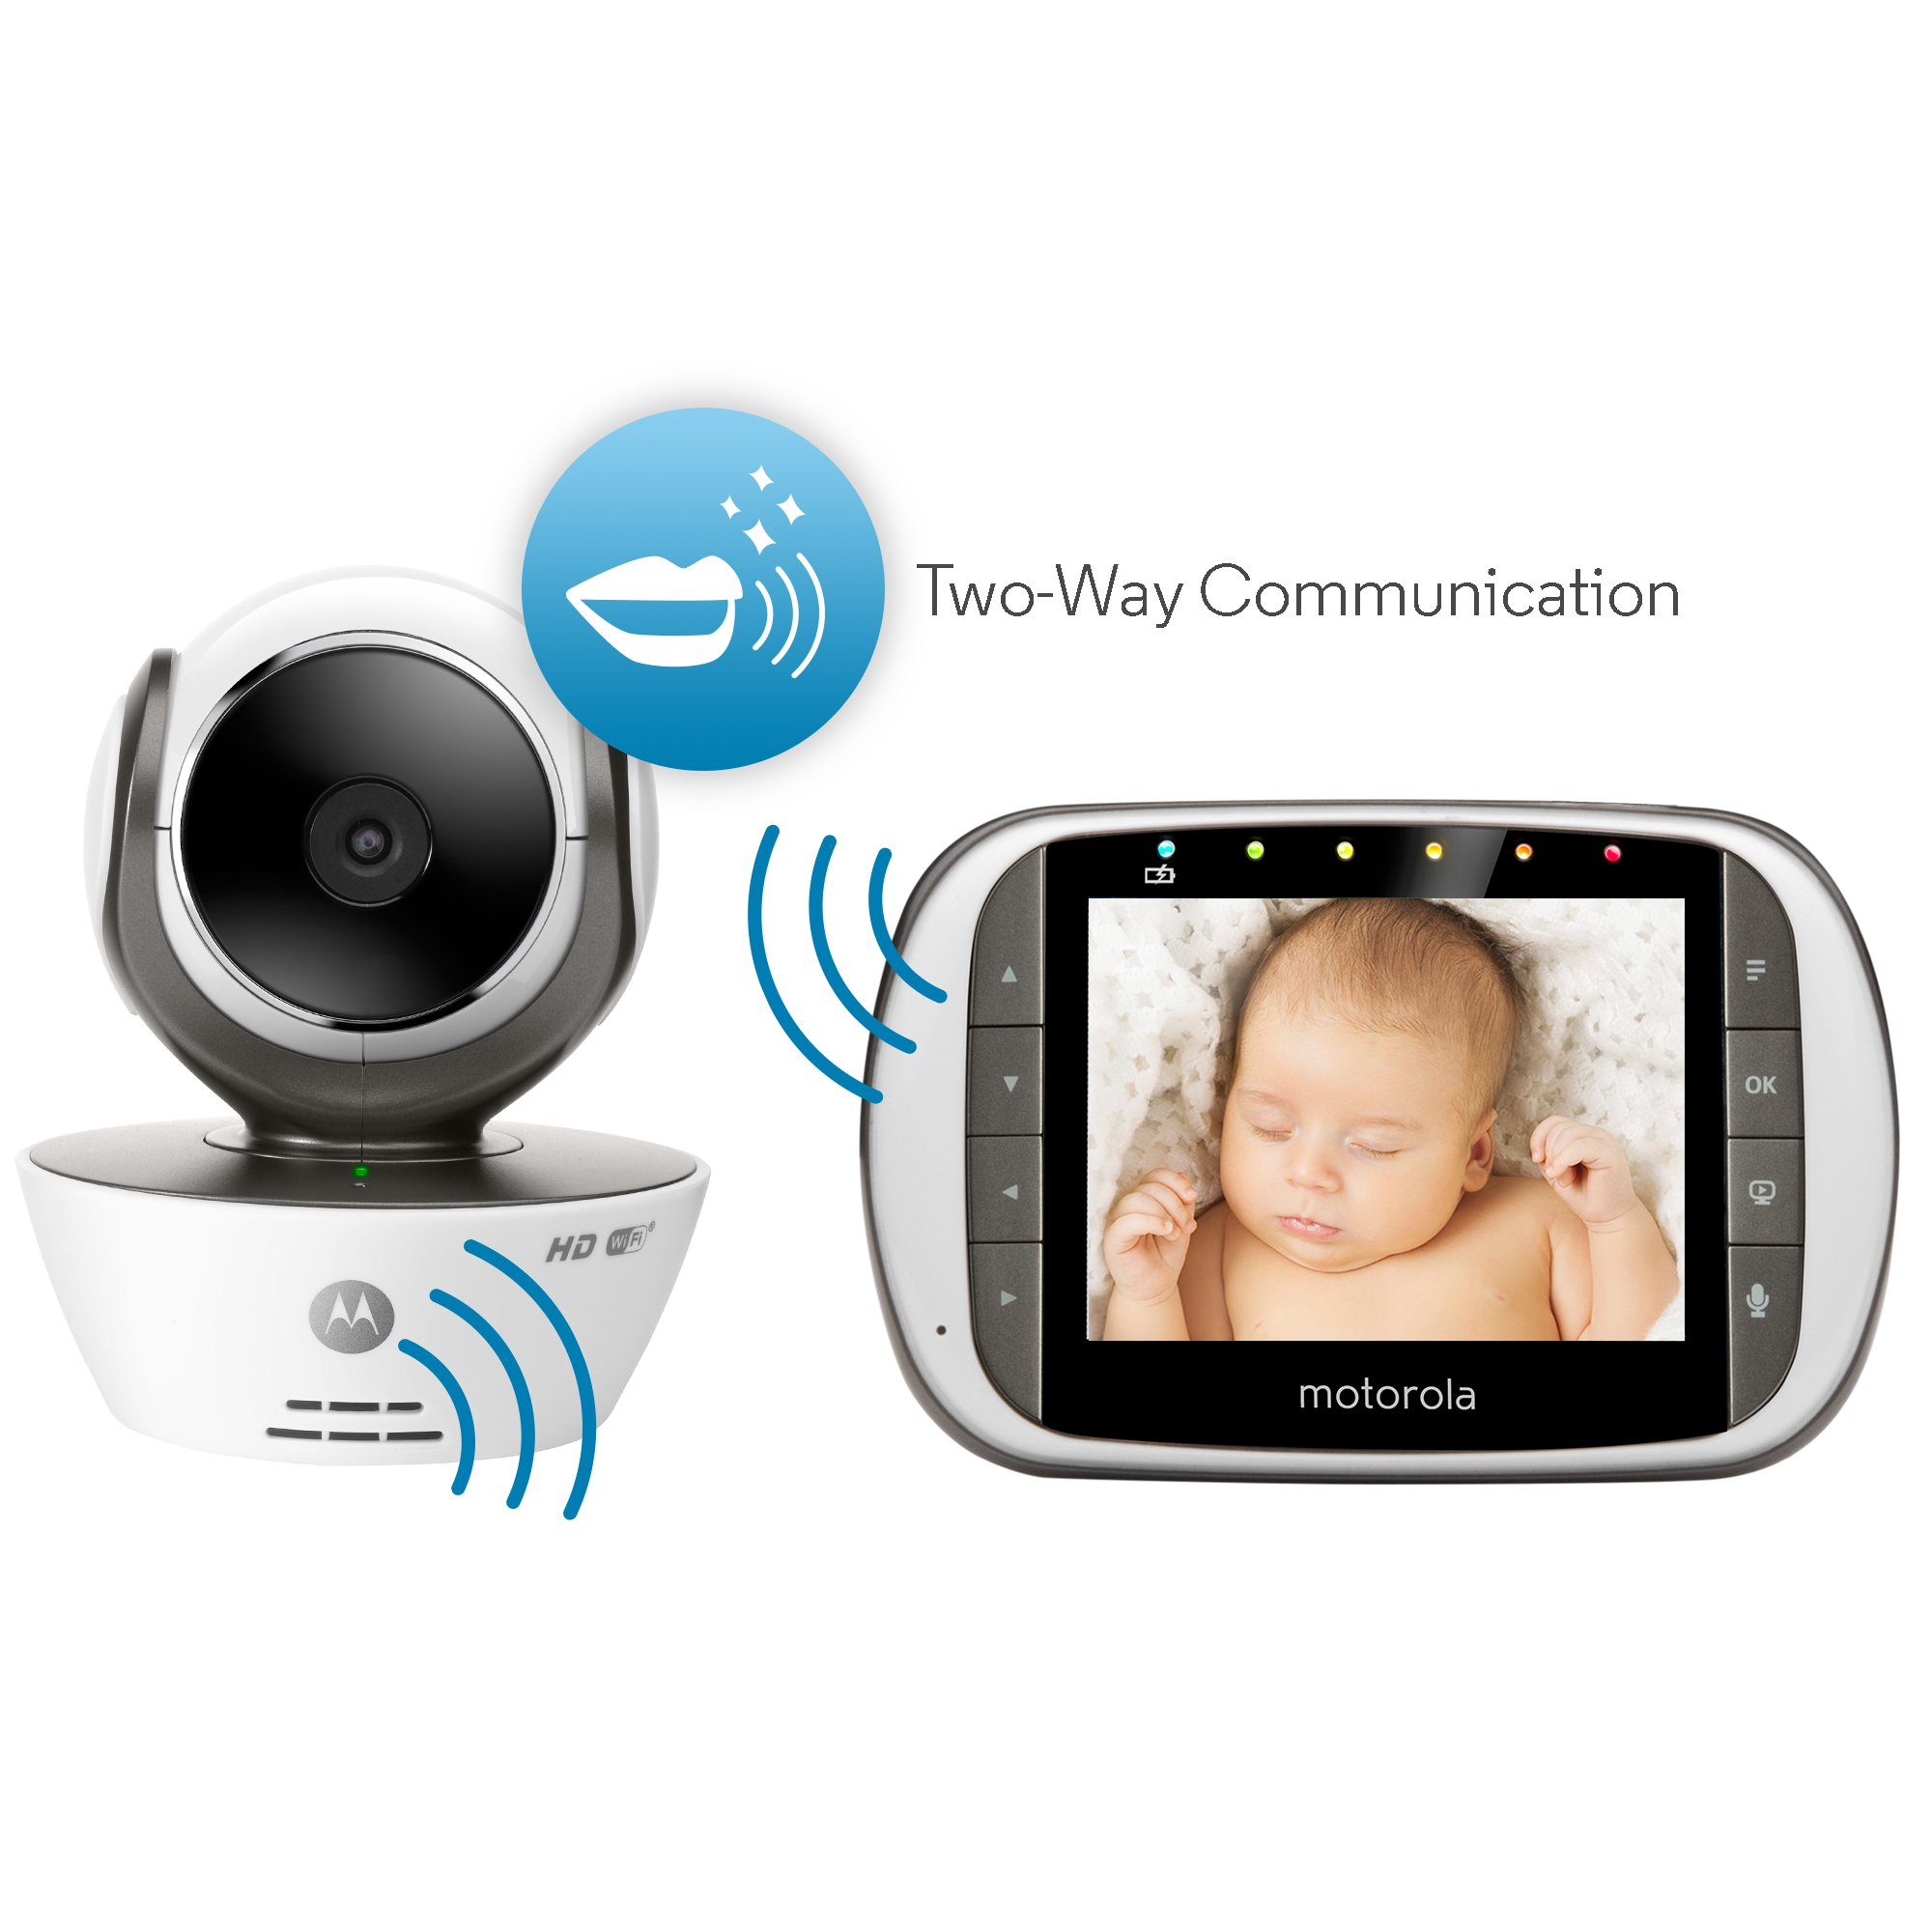 Motorola MBP853CONNECT-2 Dual Mode Baby Monitor with 2 Cameras and 3.5-Inch LCD Parent Monitor and Wi-Fi Internet Viewing by Motorola Baby (Image #2)